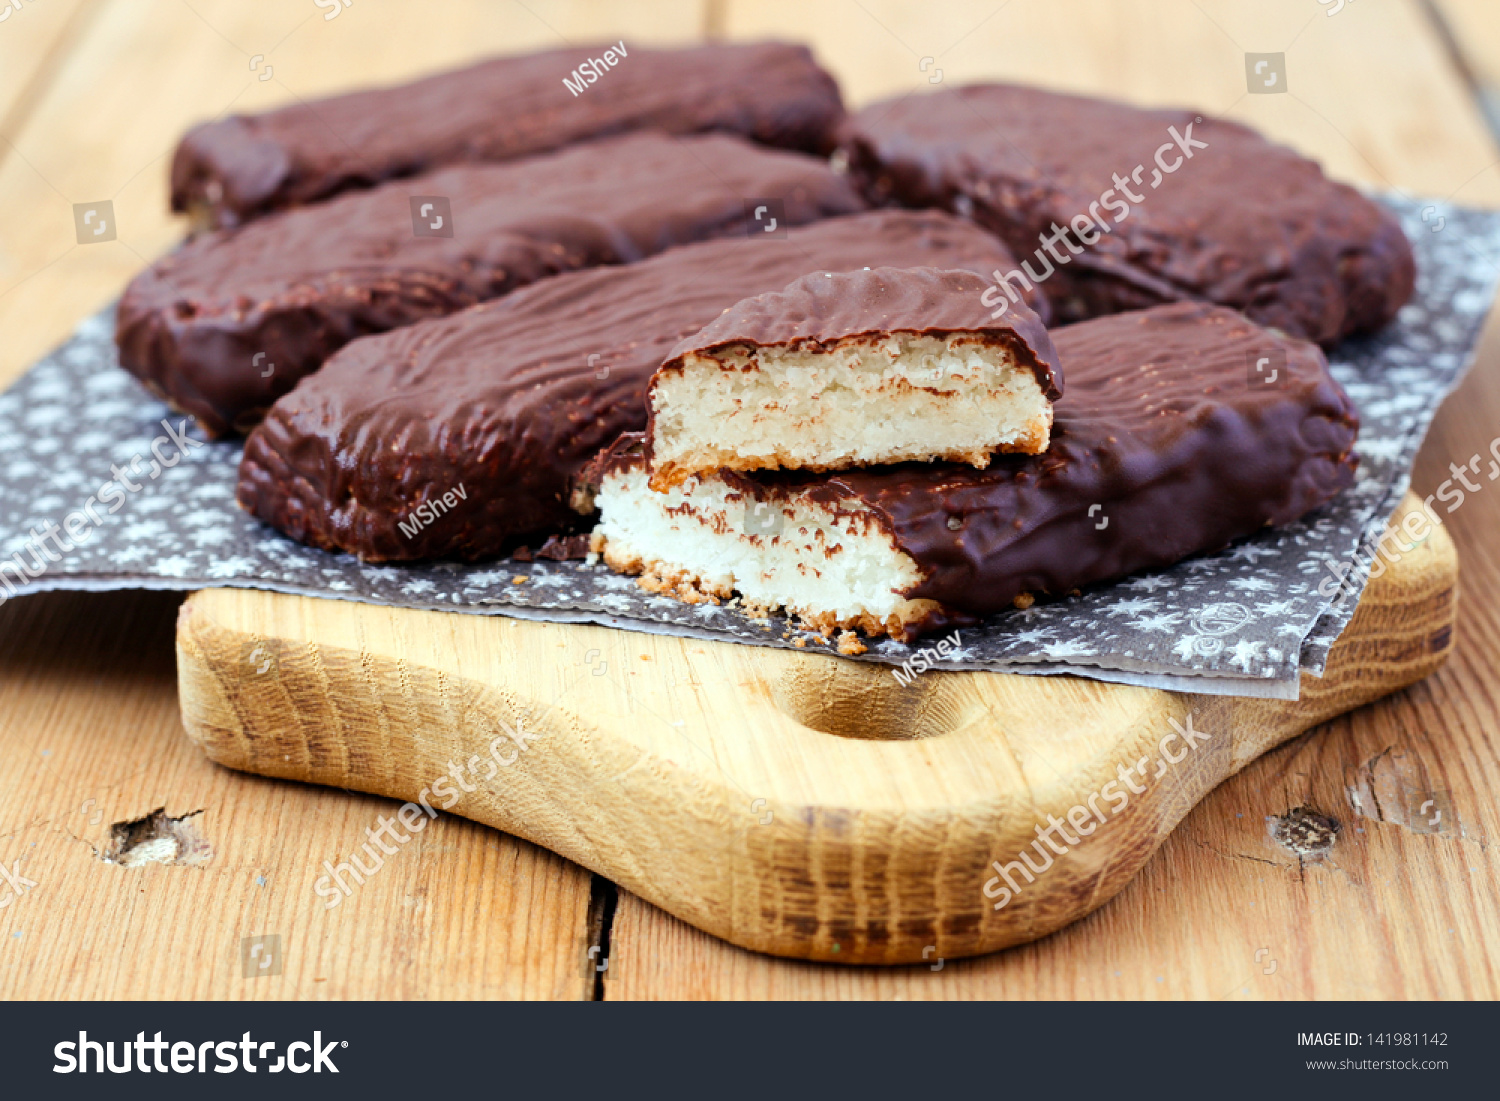 http://image.shutterstock.com/z/stock-photo-homemade-coconut-chocolate-bars-141981142.jpg